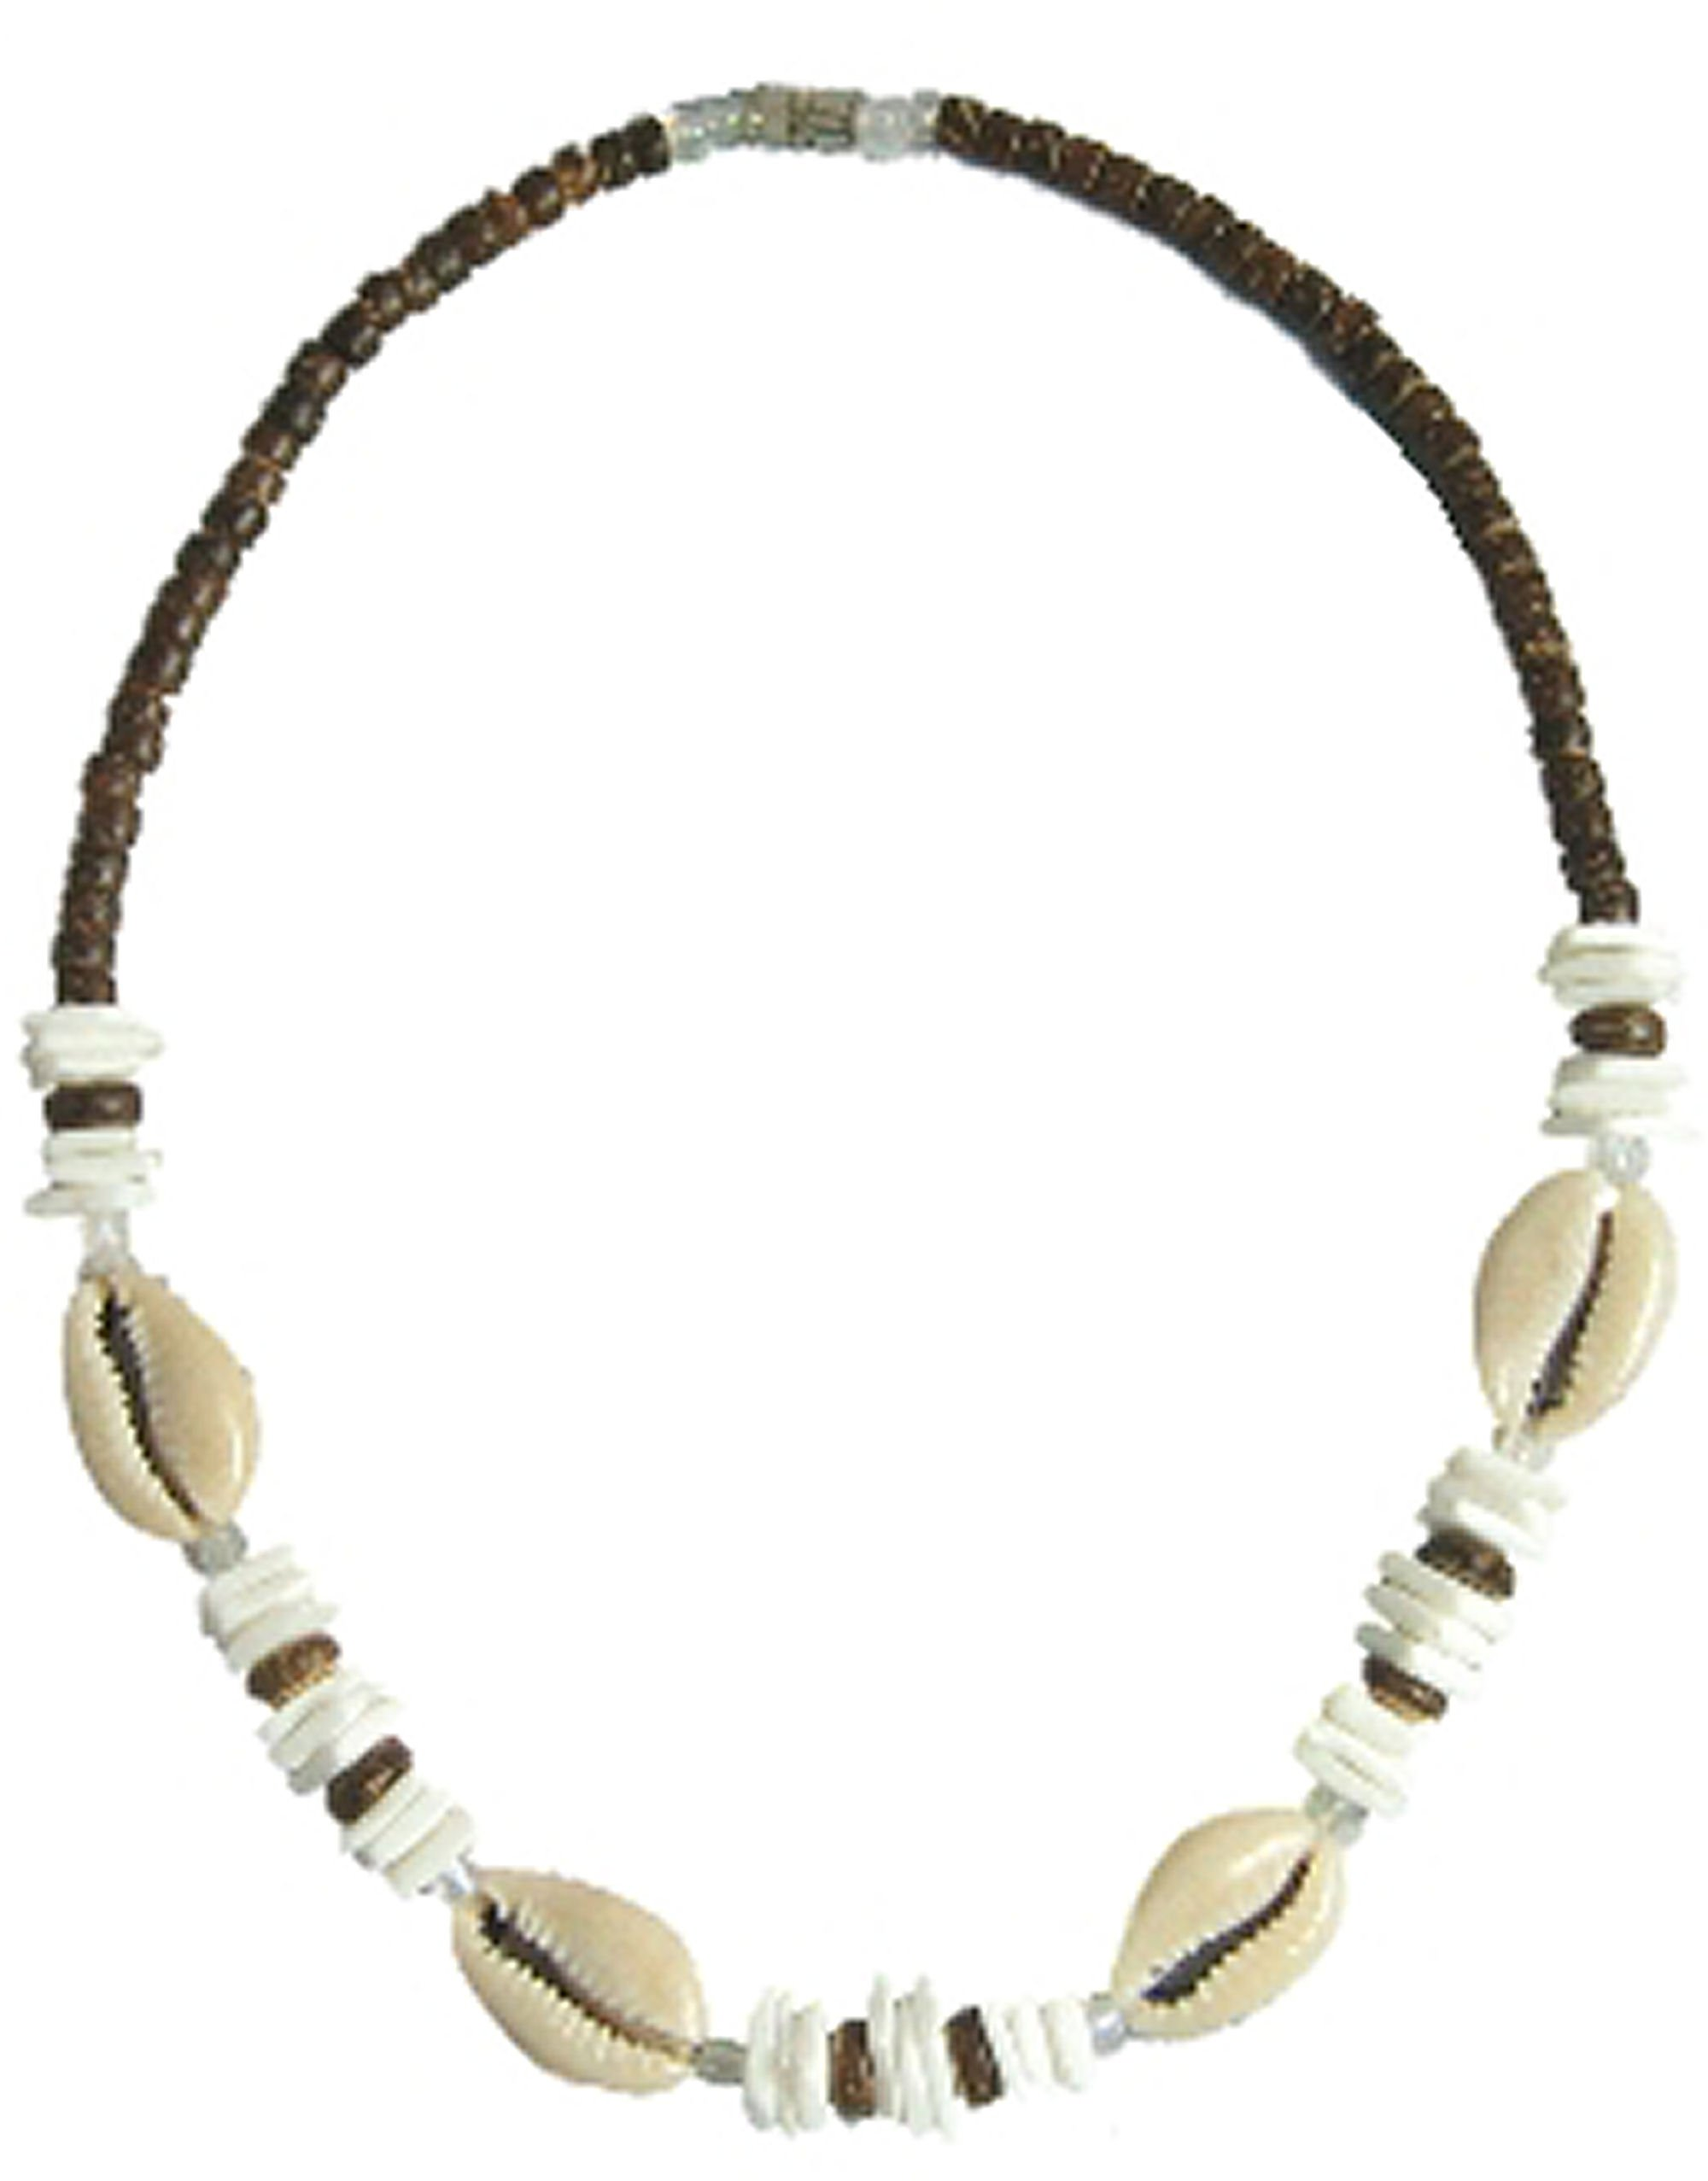 Native Treasure - Cowrie Shell Puka Chips Brown Coco Bead Necklace (18 Inches)